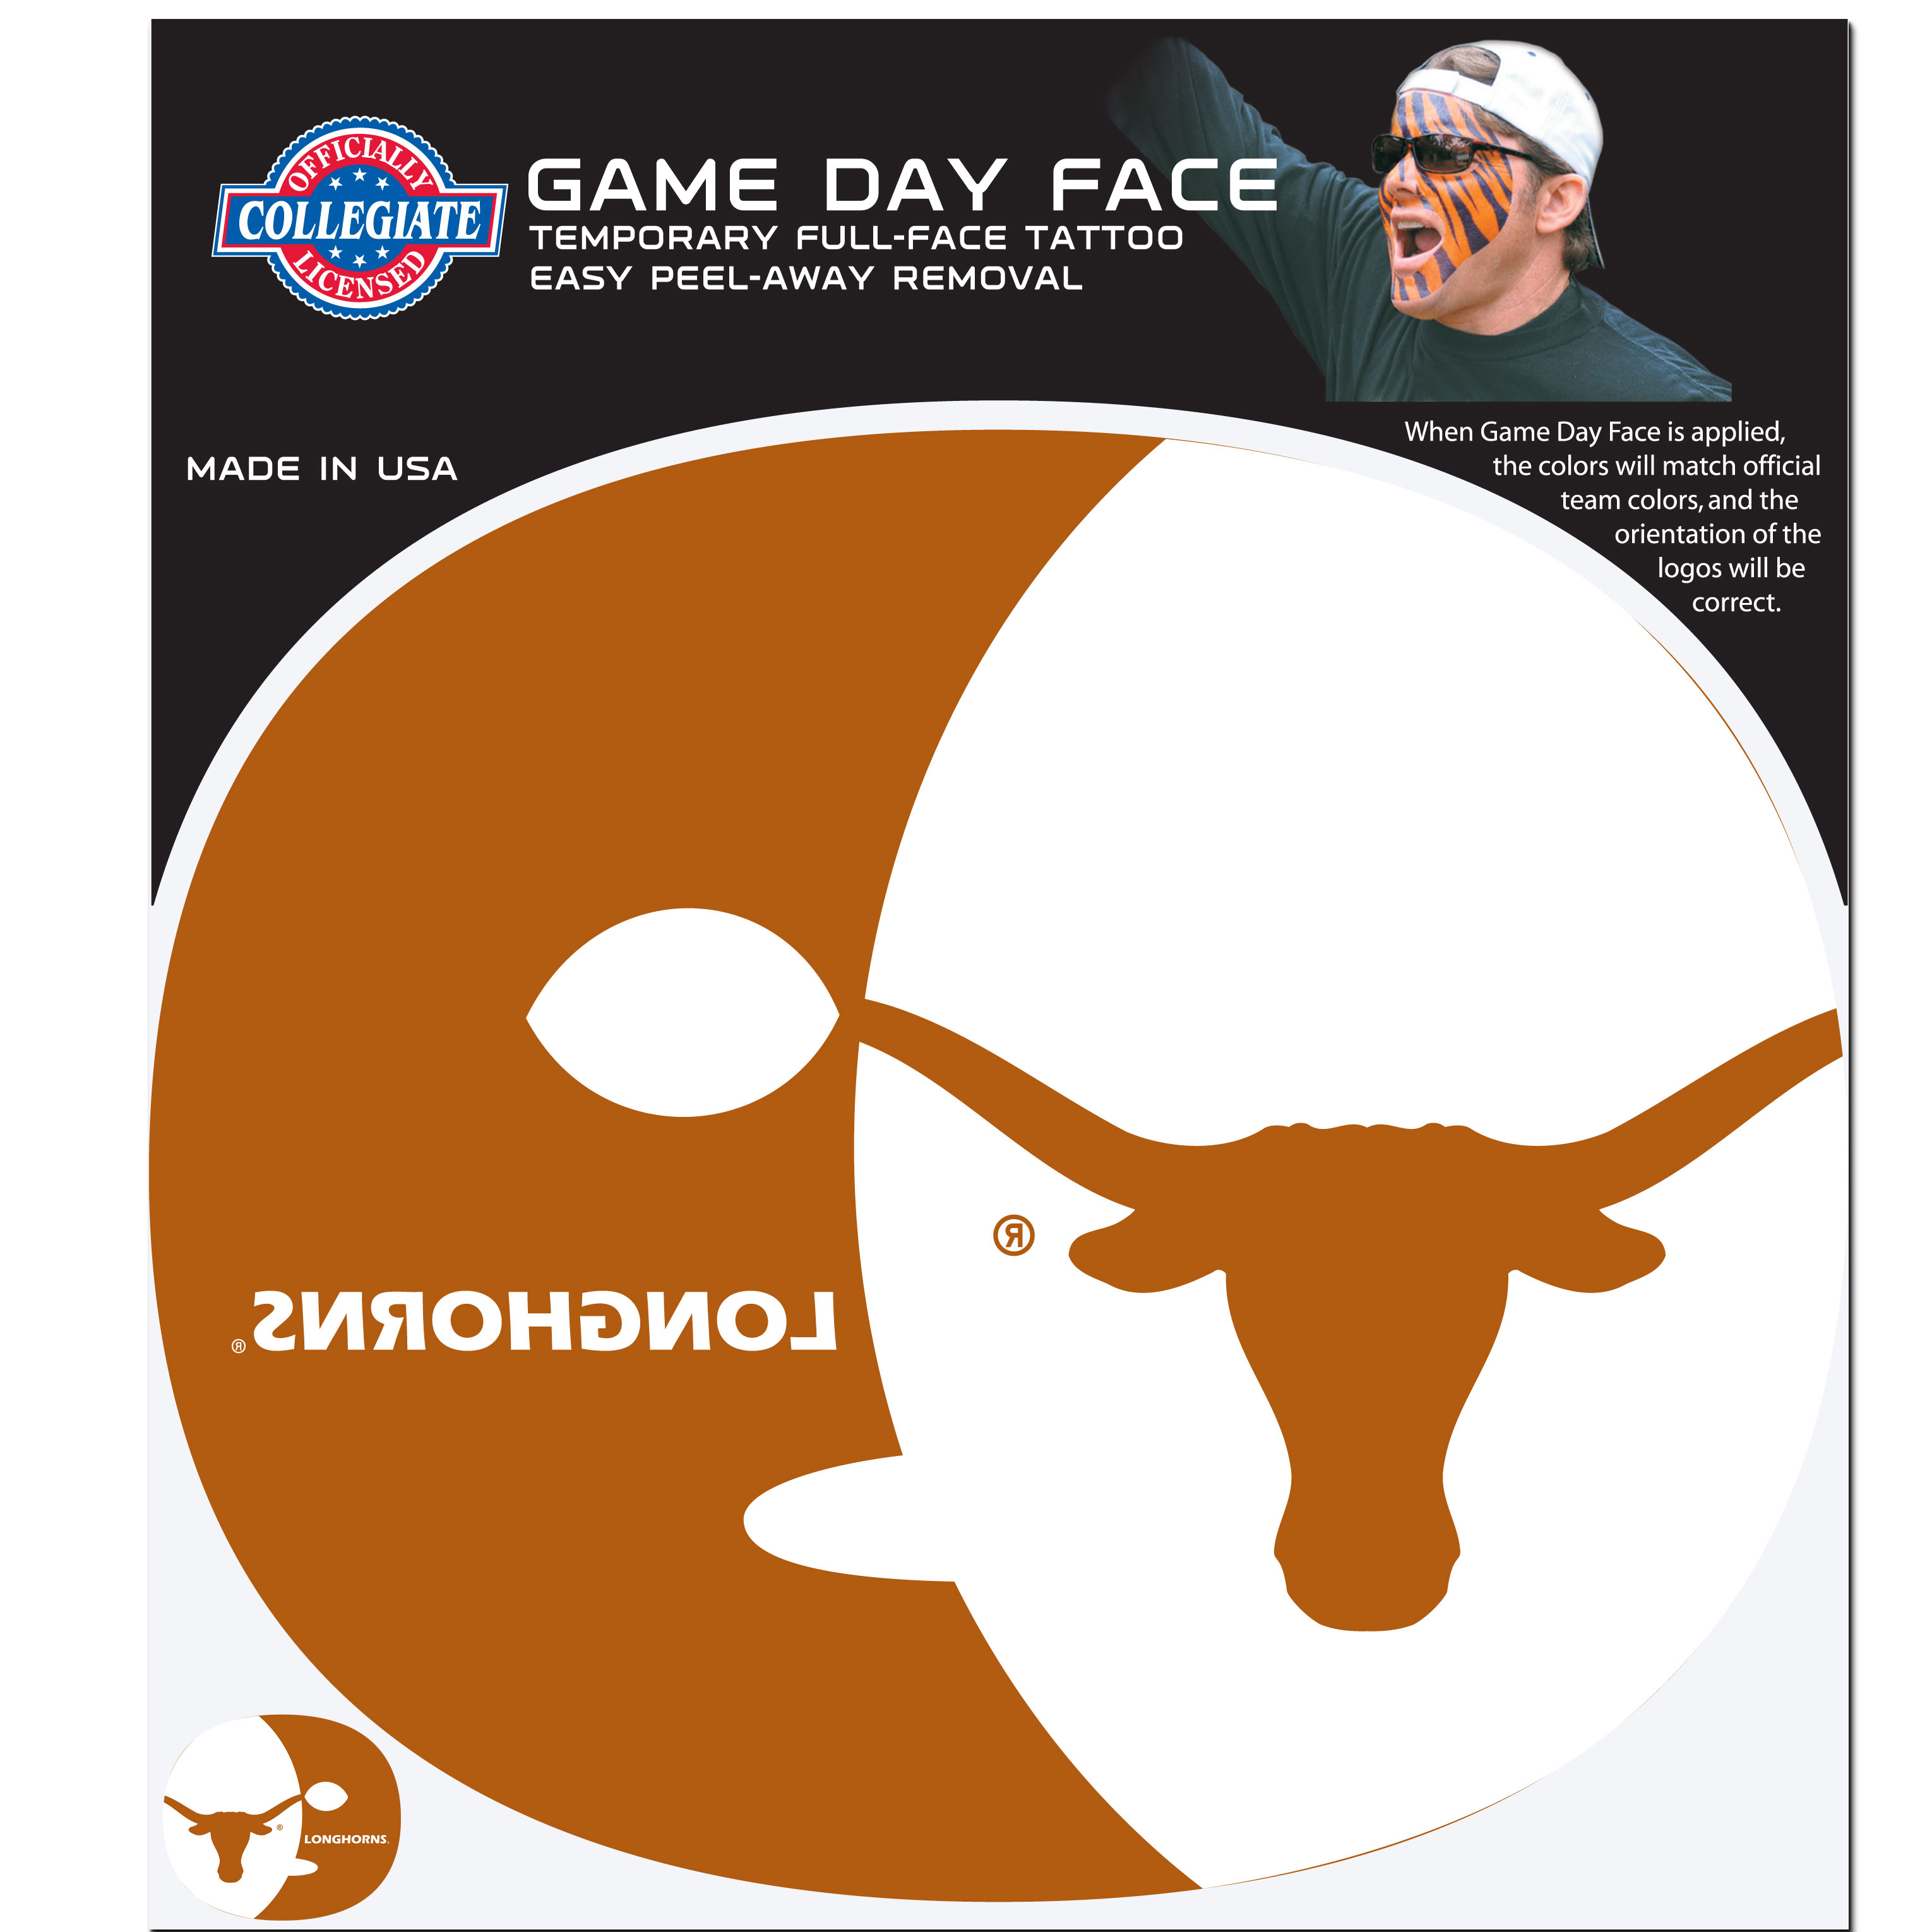 Texas Longhorns Game Face Temporary Tattoo - No better way to show your Texas Longhorns pride than by painting your face. Siskiyou's Game Day Face Temporary Tattoo isn't your typical face paint. It is a water based application that doesn't smudge, smear or sweat off  while you're wearing it and easily peels off after you're done celebrating your team's big Win! The temporary tattoo is large enough to trim down to fit your face.  Our Game Day Face Temporary Tattoo's are fun for fans of all ages. You may have seen our product before,  these are the same Temporary Face Tattoos as pitched on ABC's Shark Tank.